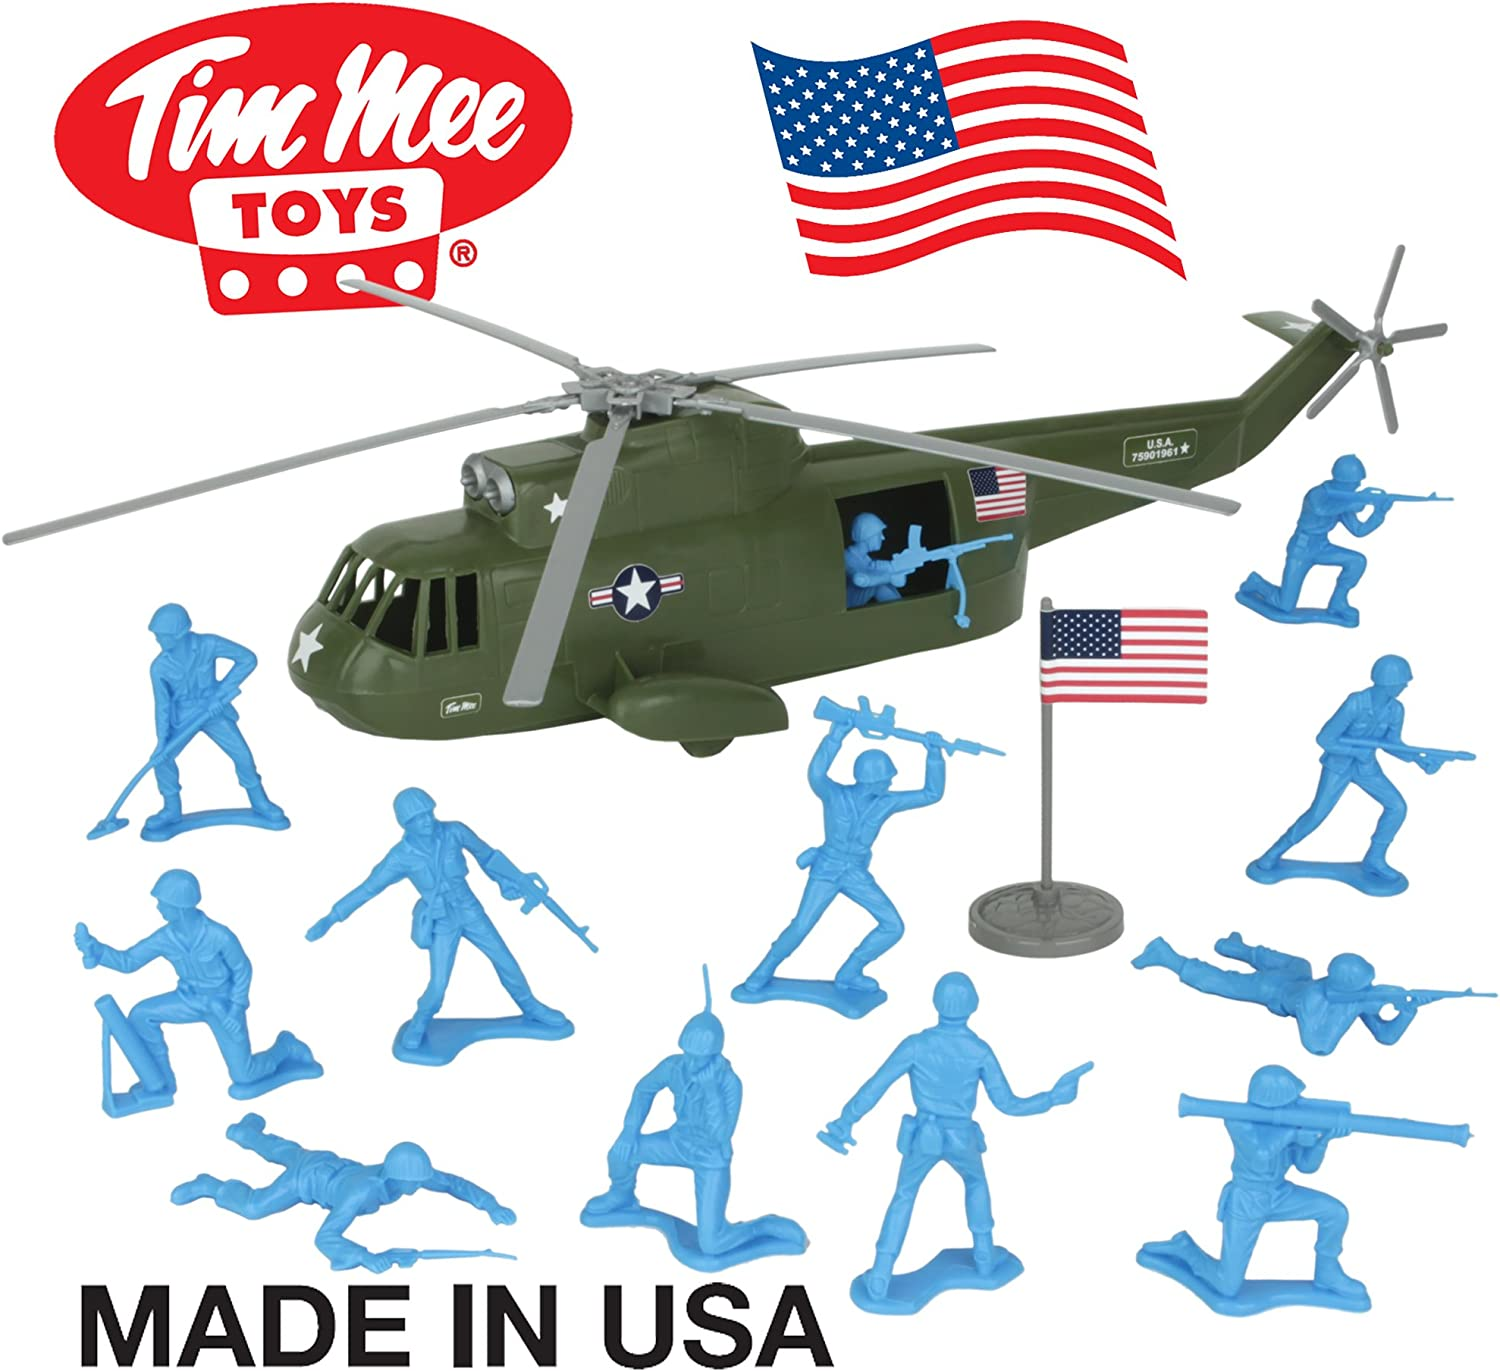 TimMee Plastic Army Men HELICOPTER Playset  Olive Green 26pc  Made in USA